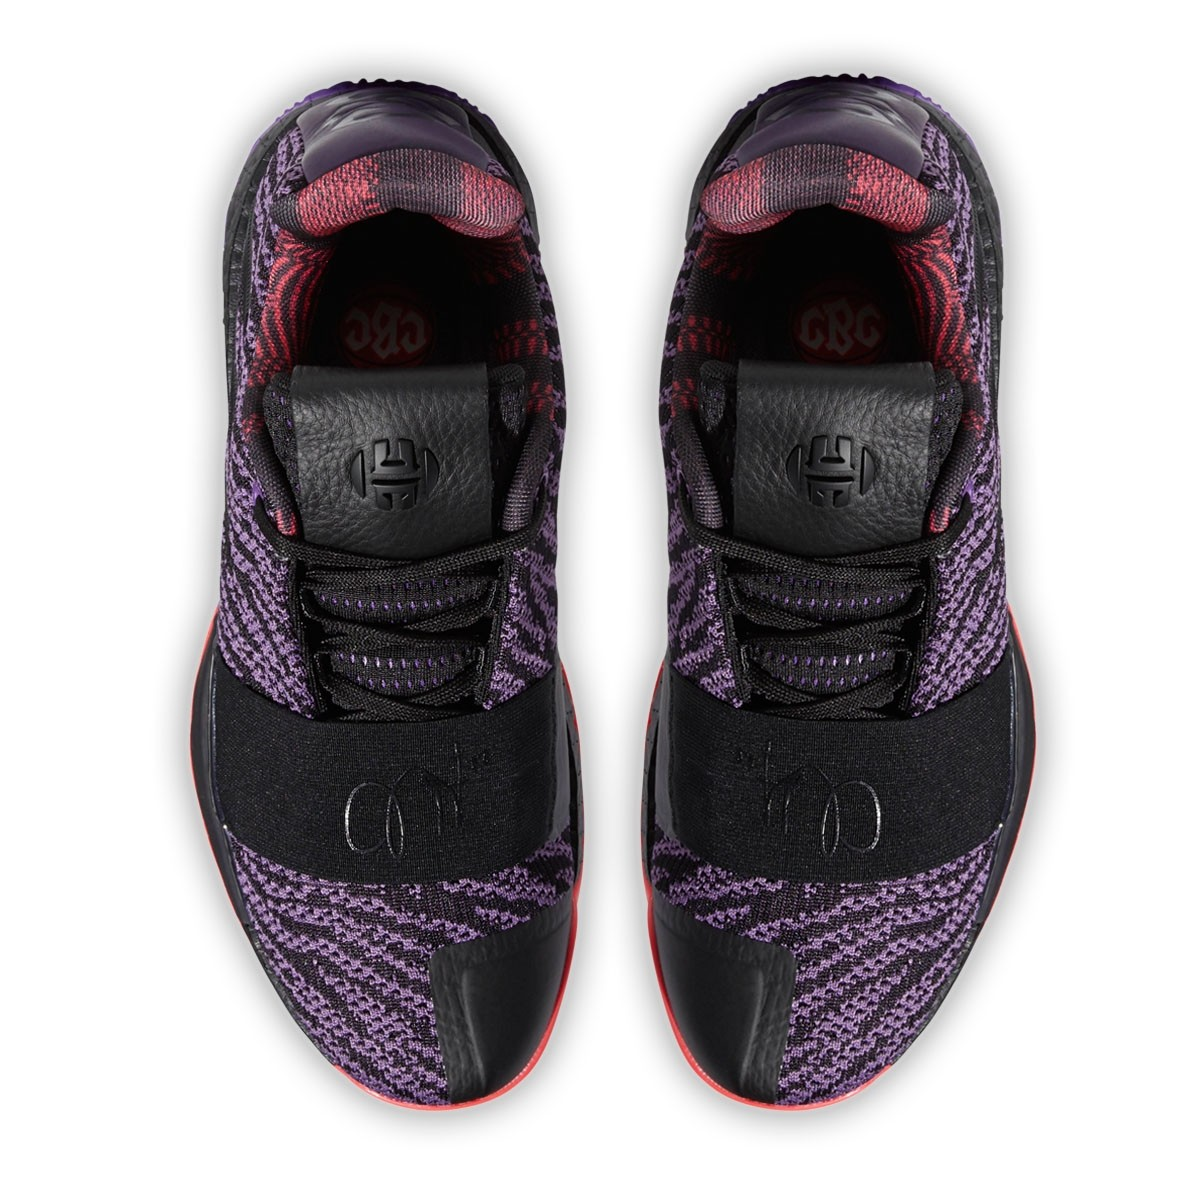 bc1ef7be1f4 Buy ADIDAS Harden Vol.3  CBC  Basketball shoes   sneakers